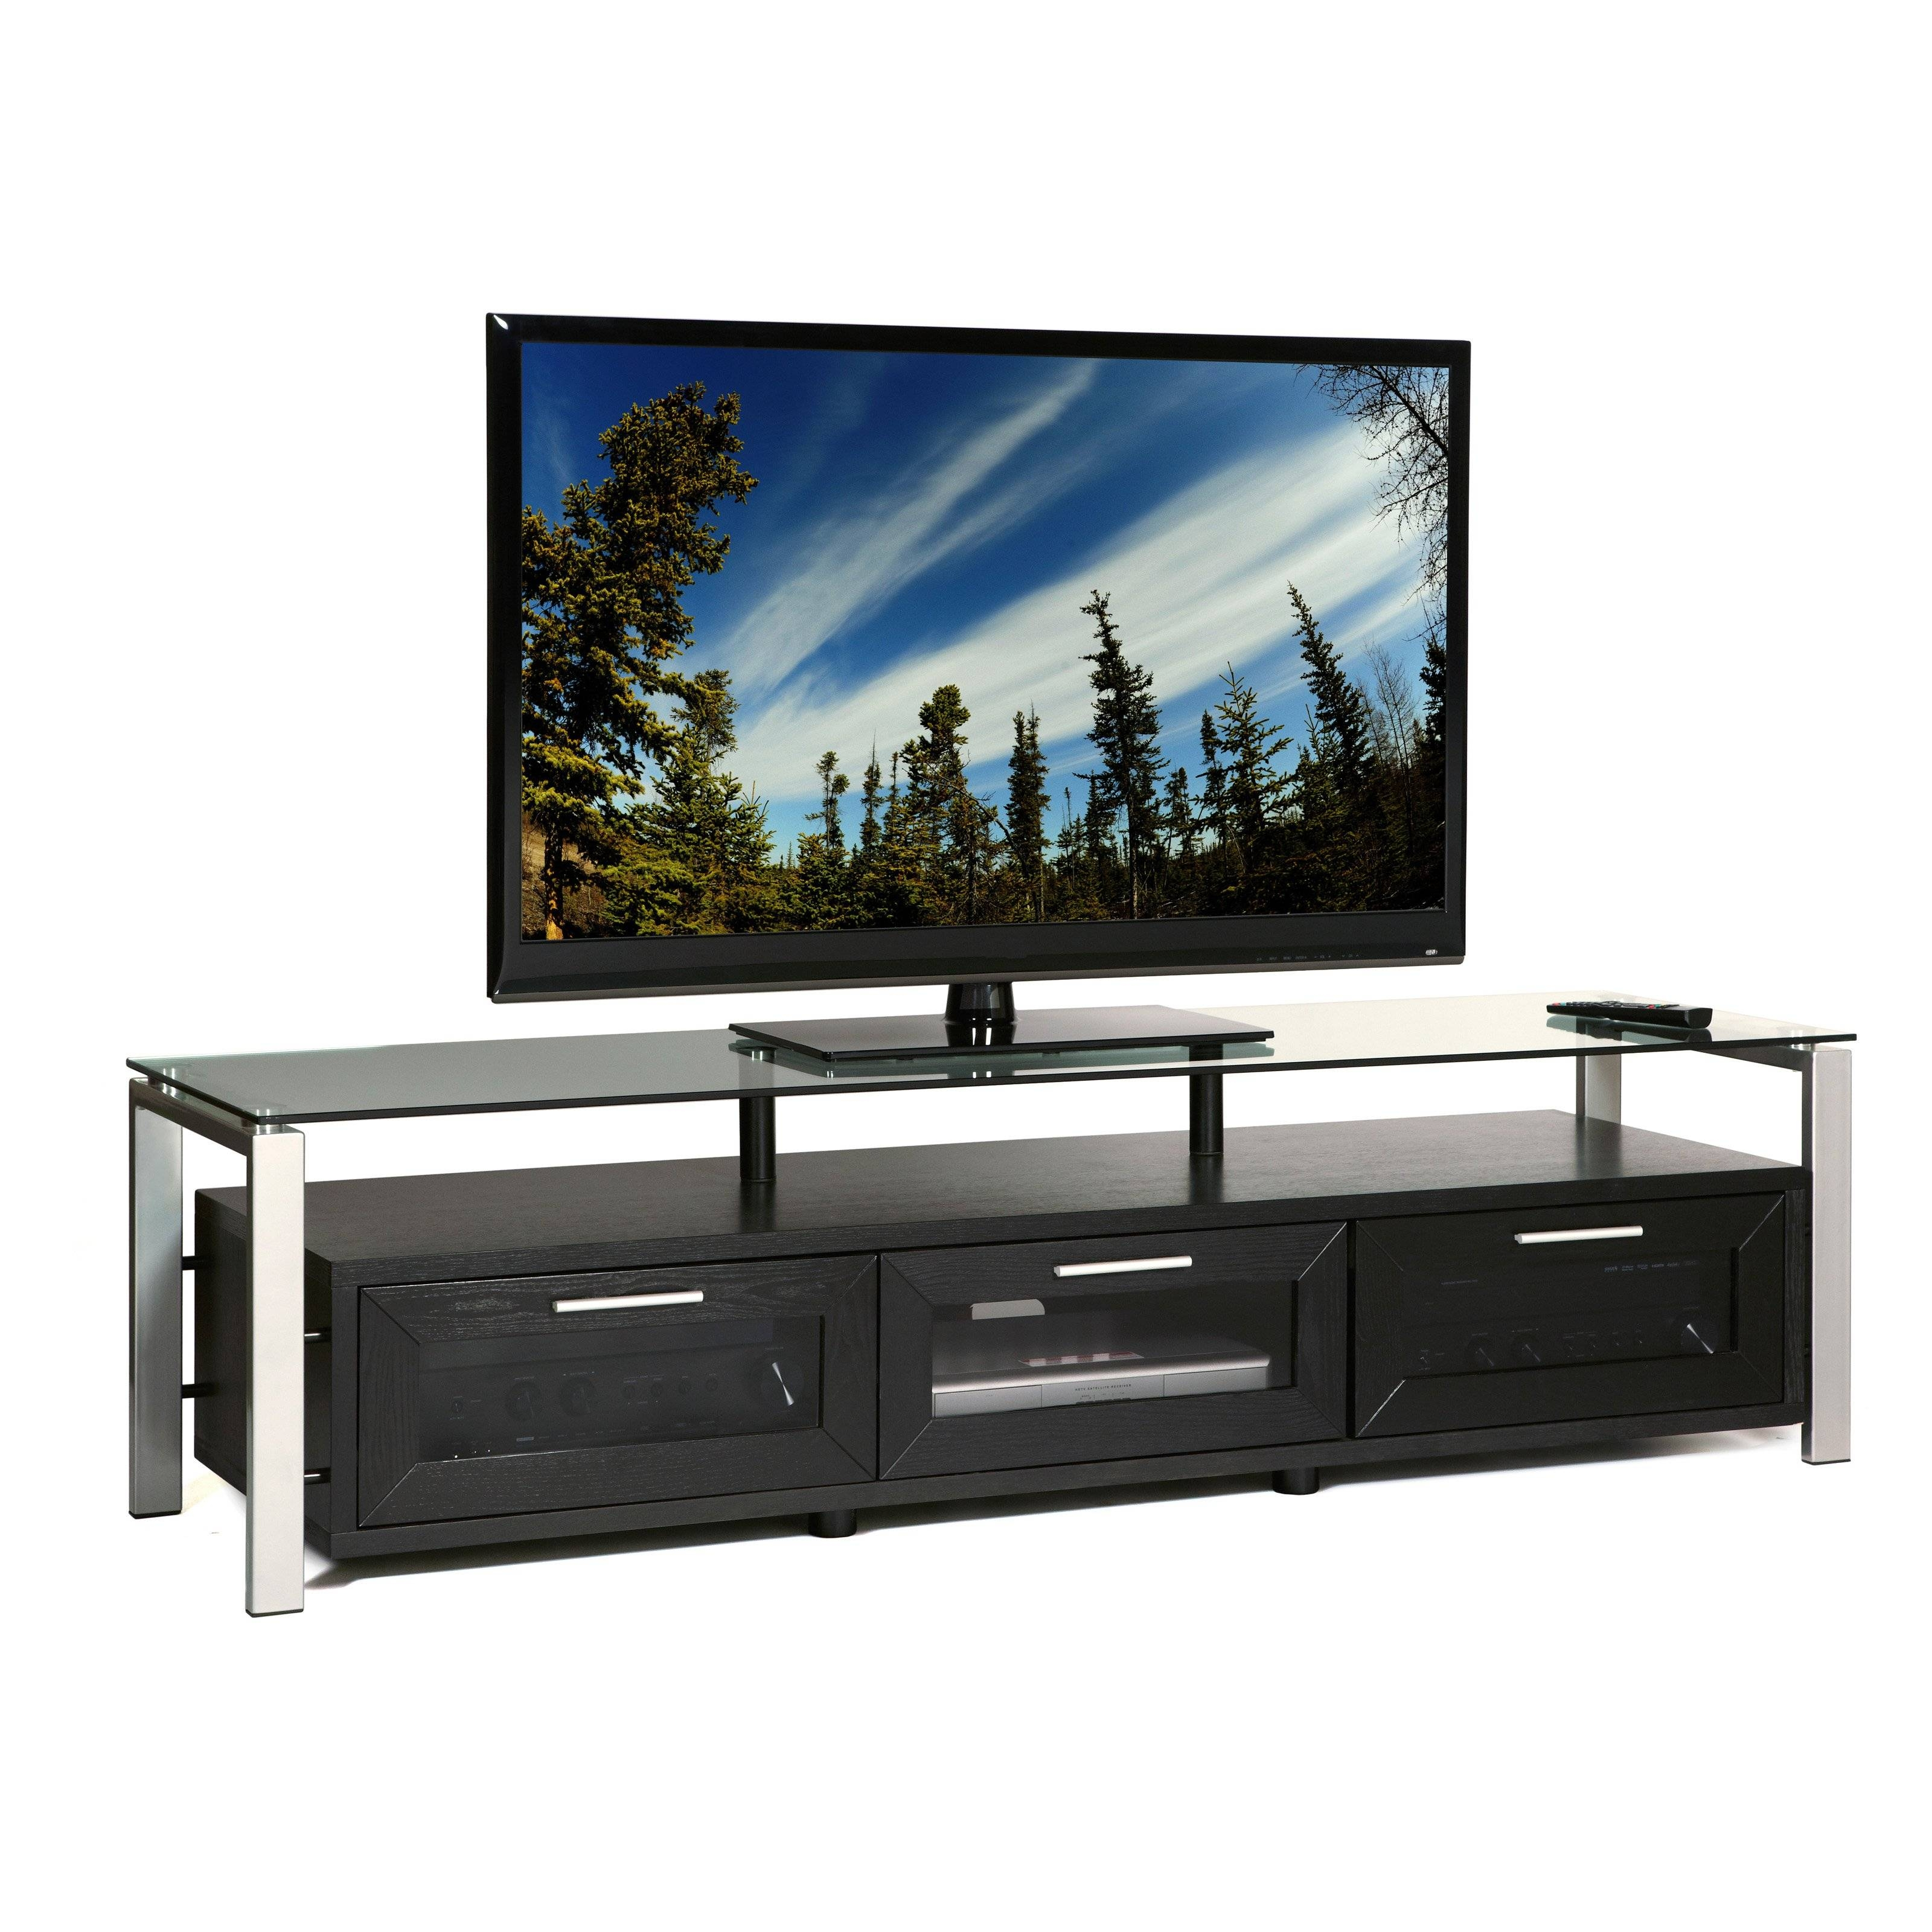 Plateau Decor 71 Inch Tv Stand In Black/clear And Silver | Hayneedle With Silver Tv Stands (View 4 of 15)